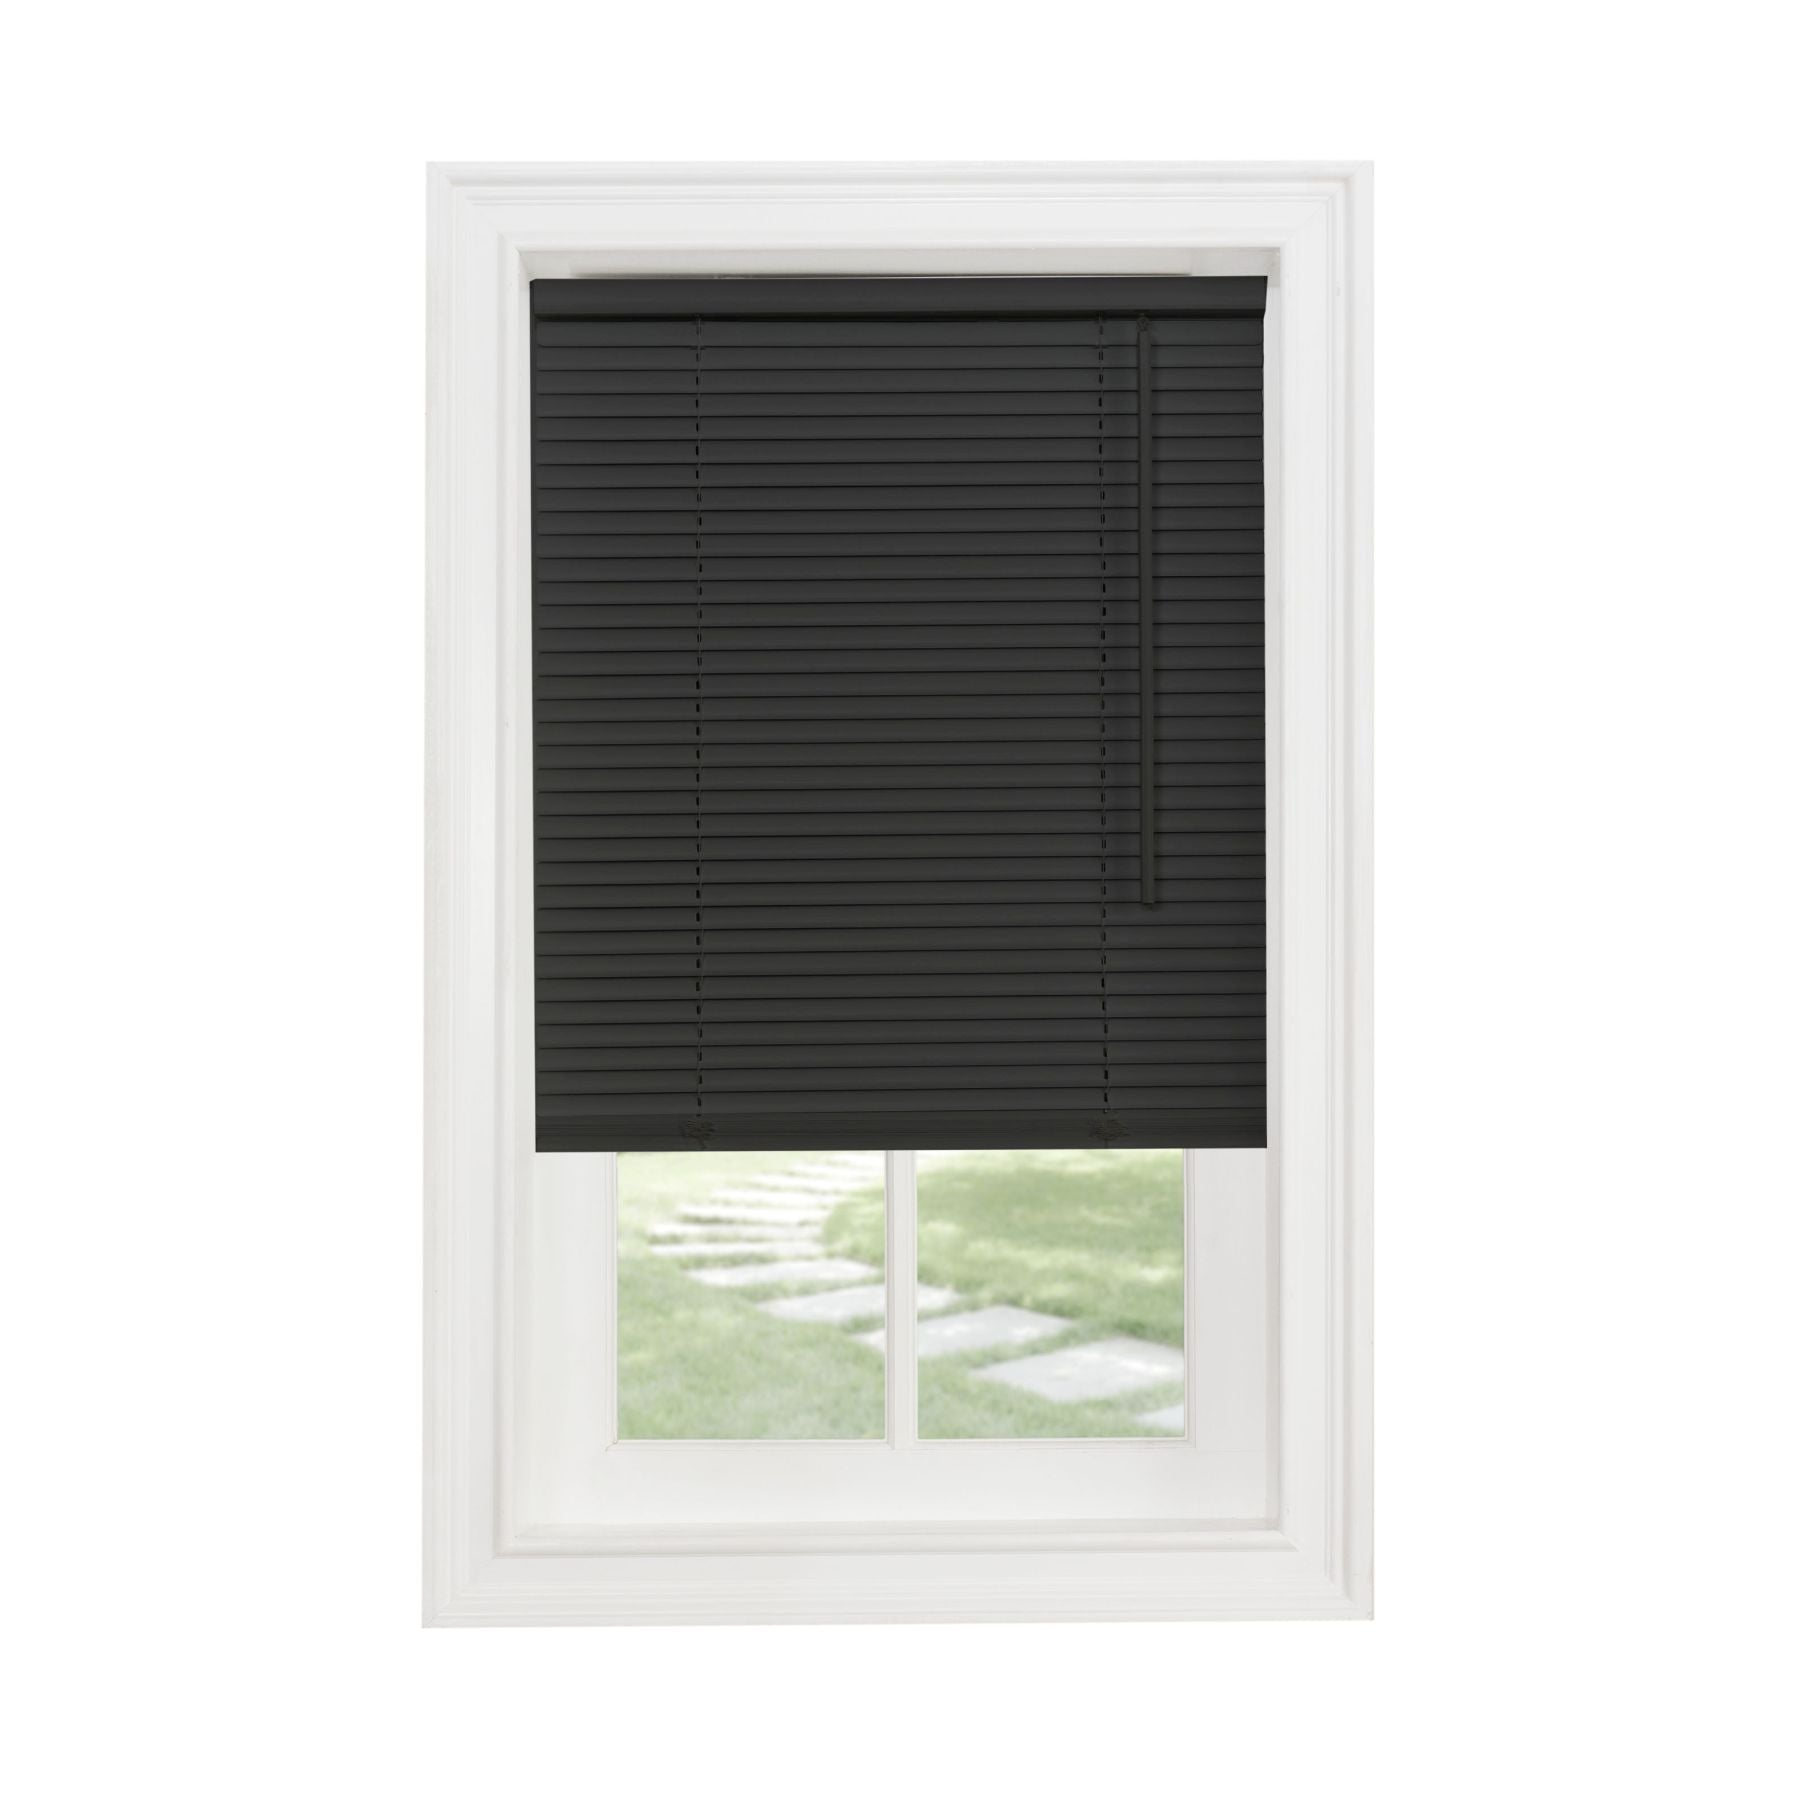 "Traditional Elegance Cordless Sunrise 1"" Light Filtering Mini Blind 27x64 - Black"